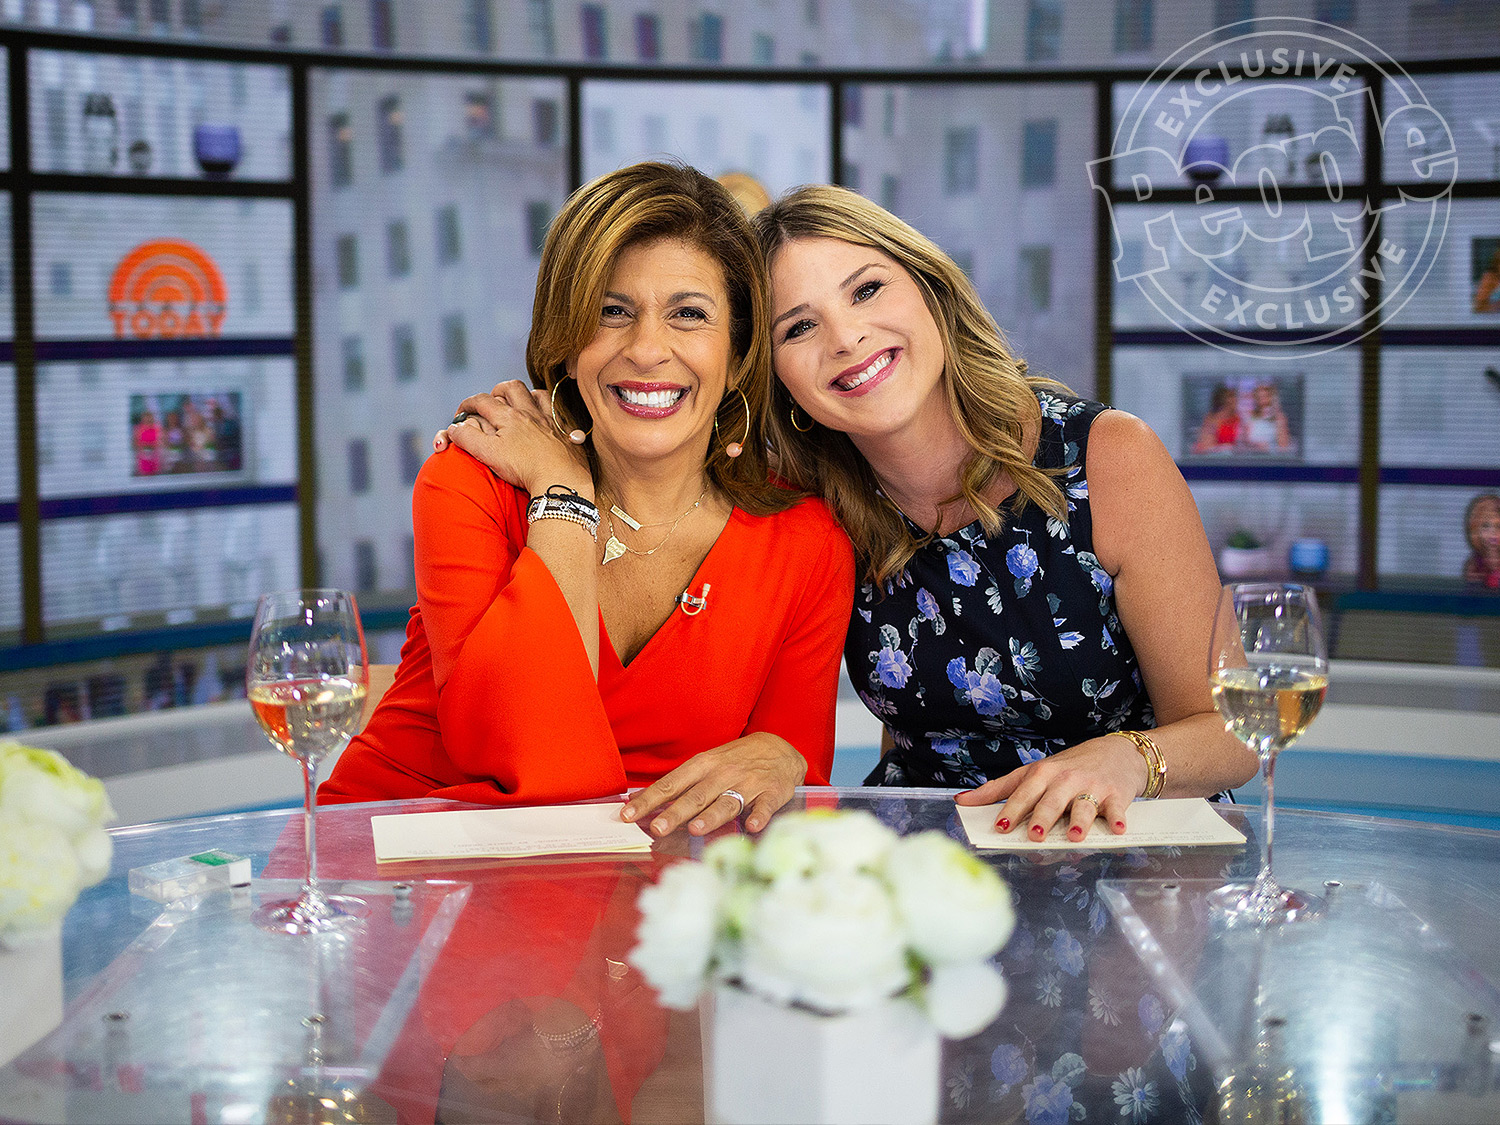 New Today Co-Host Jenna Bush Hager Insists, 'I Don't Really Have It All Together' jenna-hager-1